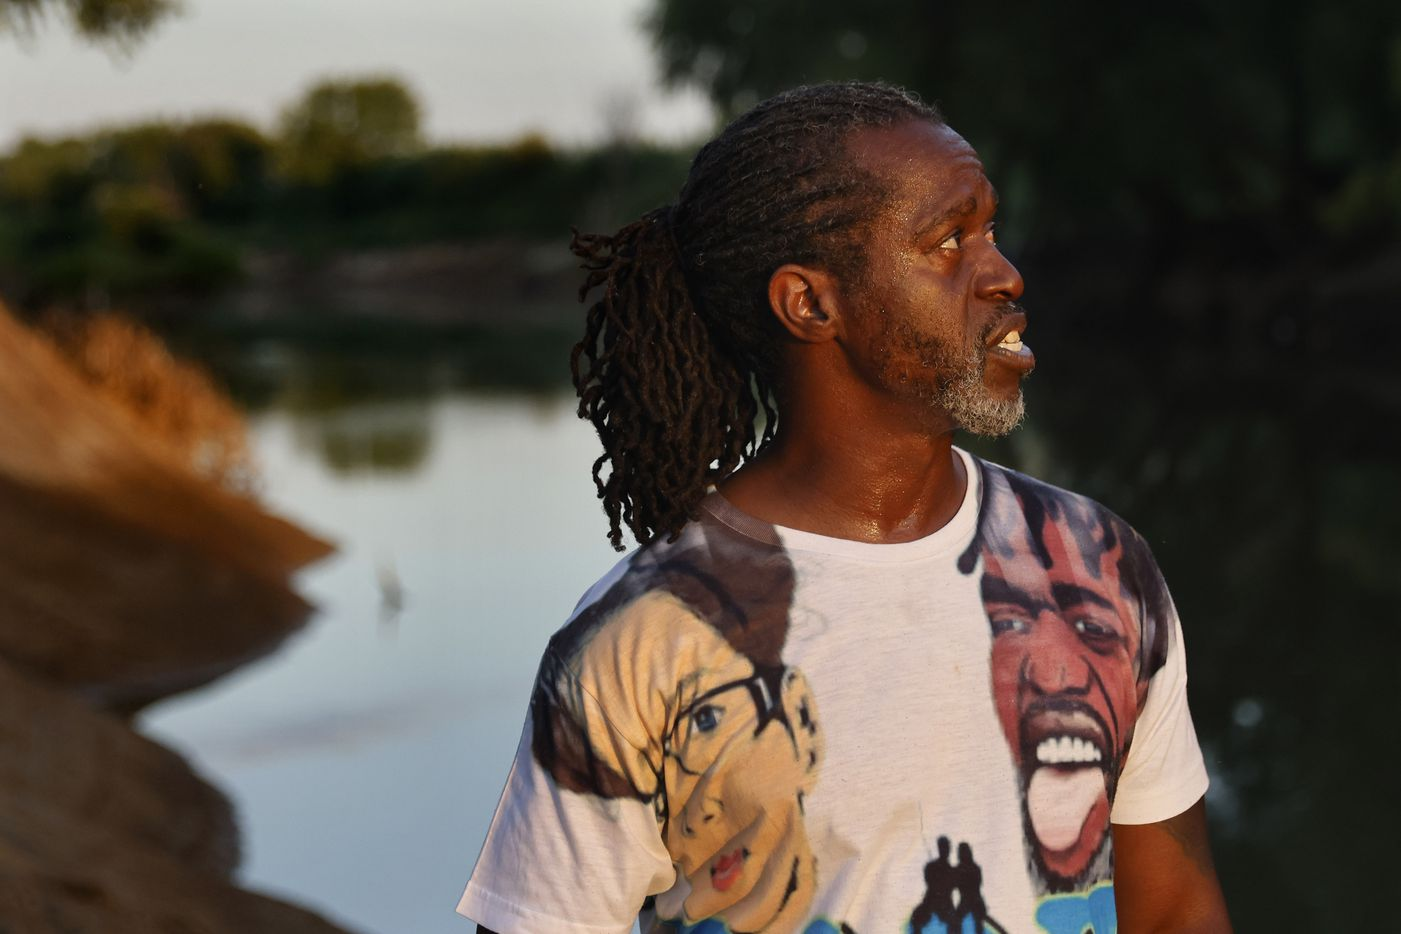 Wearing a t-shirt with he and his wife Beverly Rasnick pictured, Odell Allen watches his line for an alligator gar bite on the Trinity River, Monday, August 30, 2021. (Tom Fox/The Dallas Morning News)